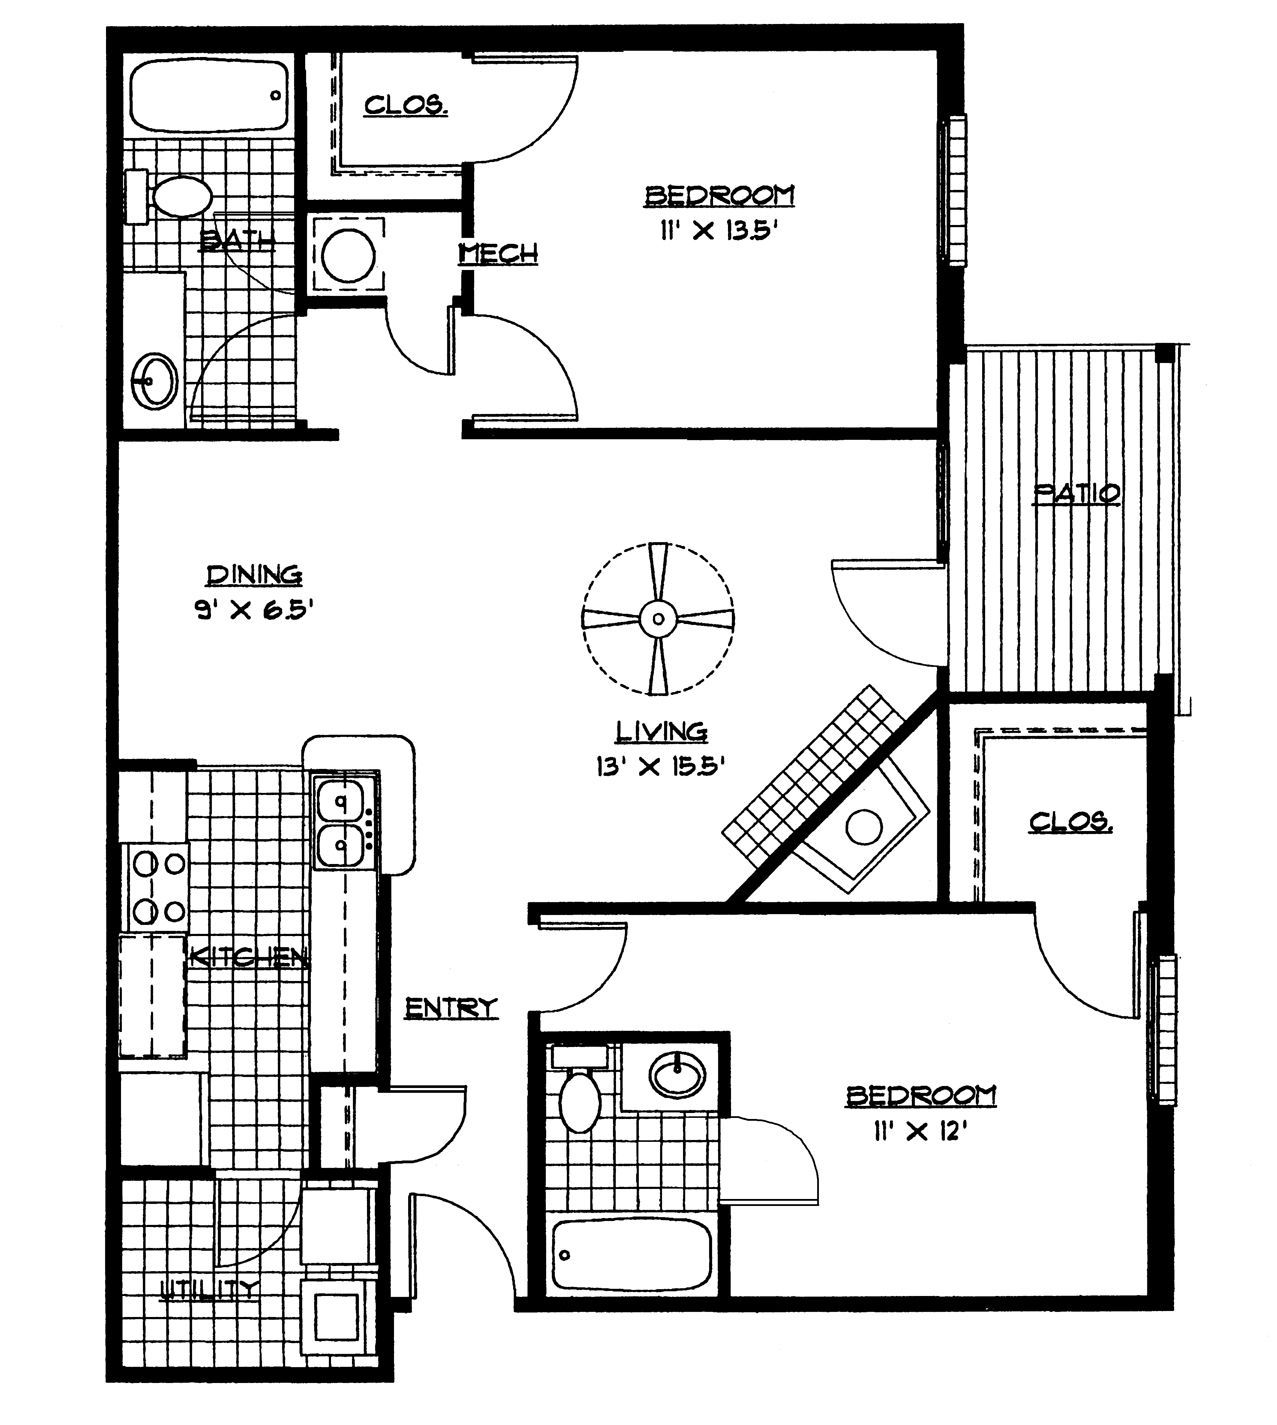 Awesome 2 Bedroom Floor Plans With Dimensions Pdf And Description In 2020 Four Bedroom House Plans Small House Floor Plans 5 Bedroom House Plans